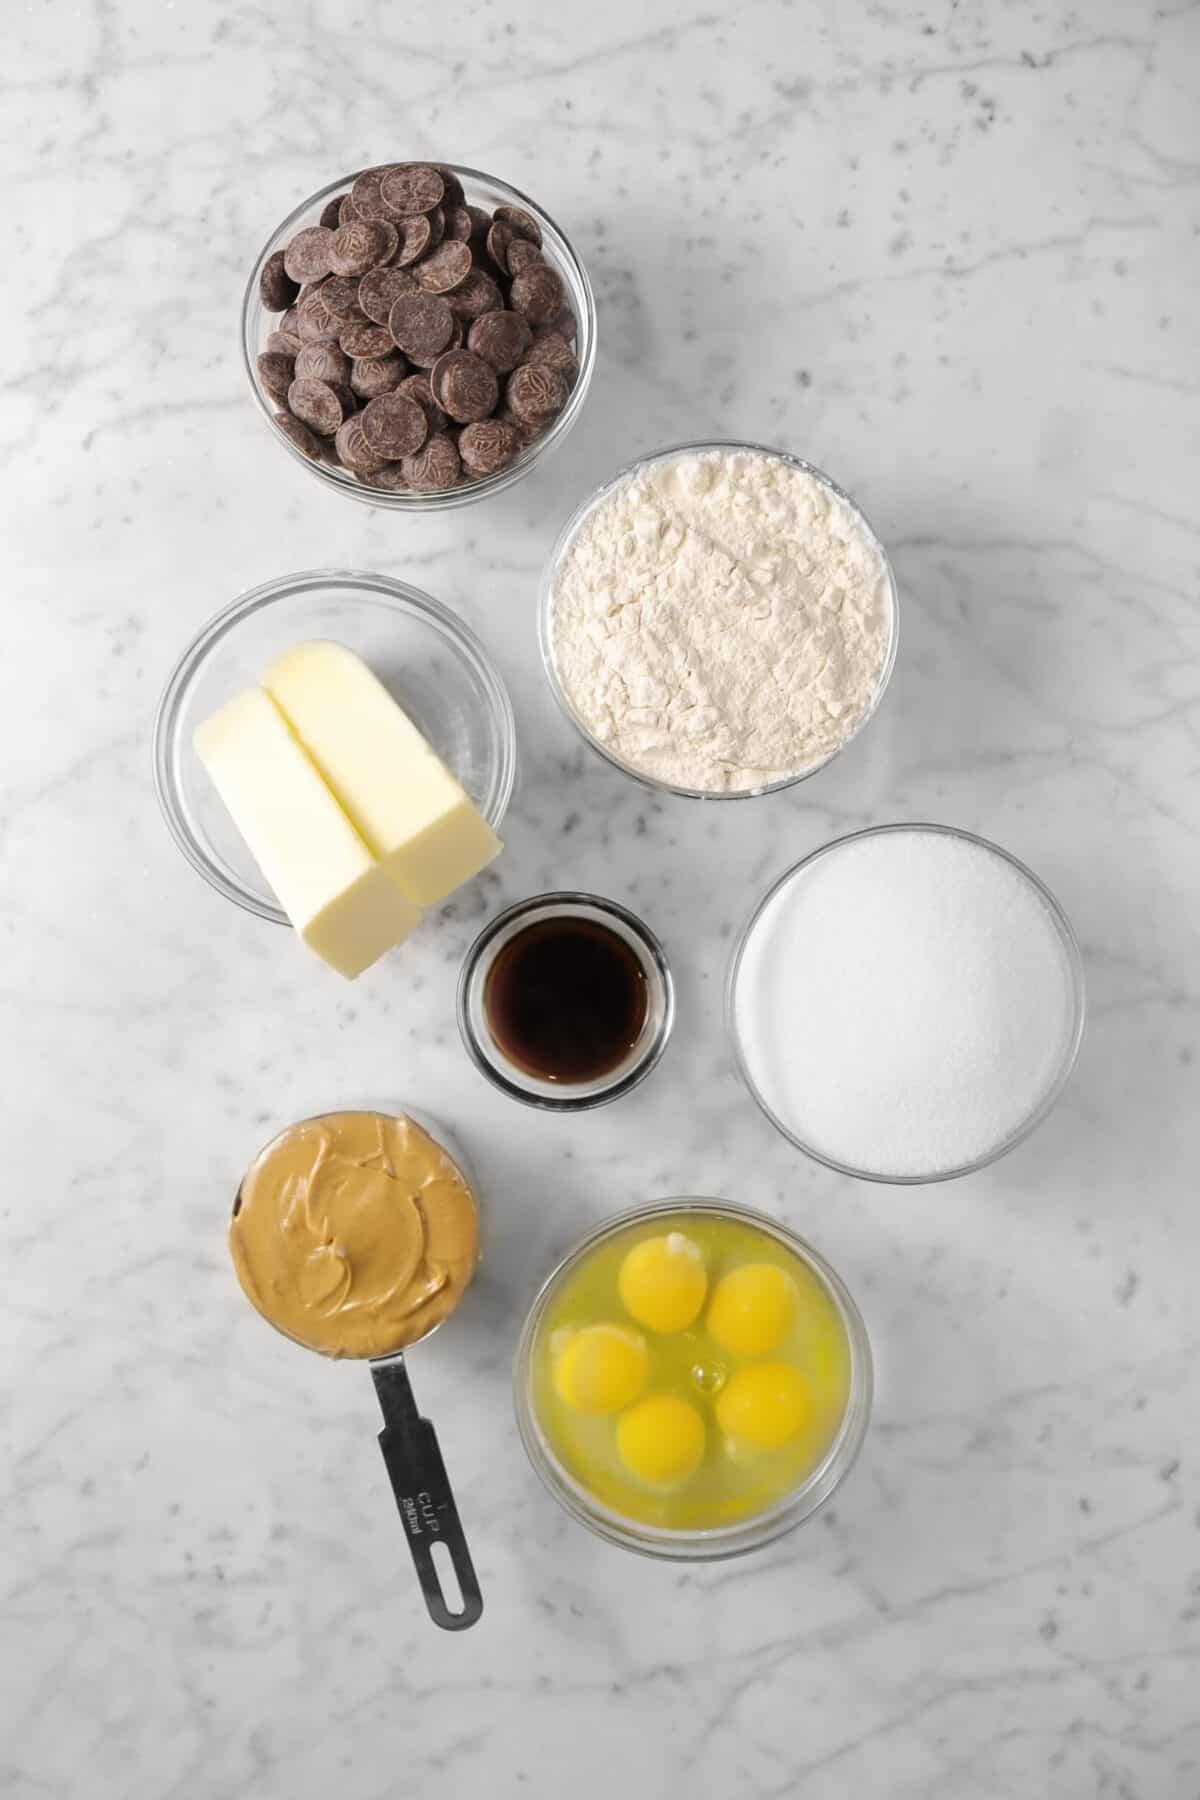 chocolate, flour, butter, vanilla, sugar, eggs, and peanut butter on a marble counter